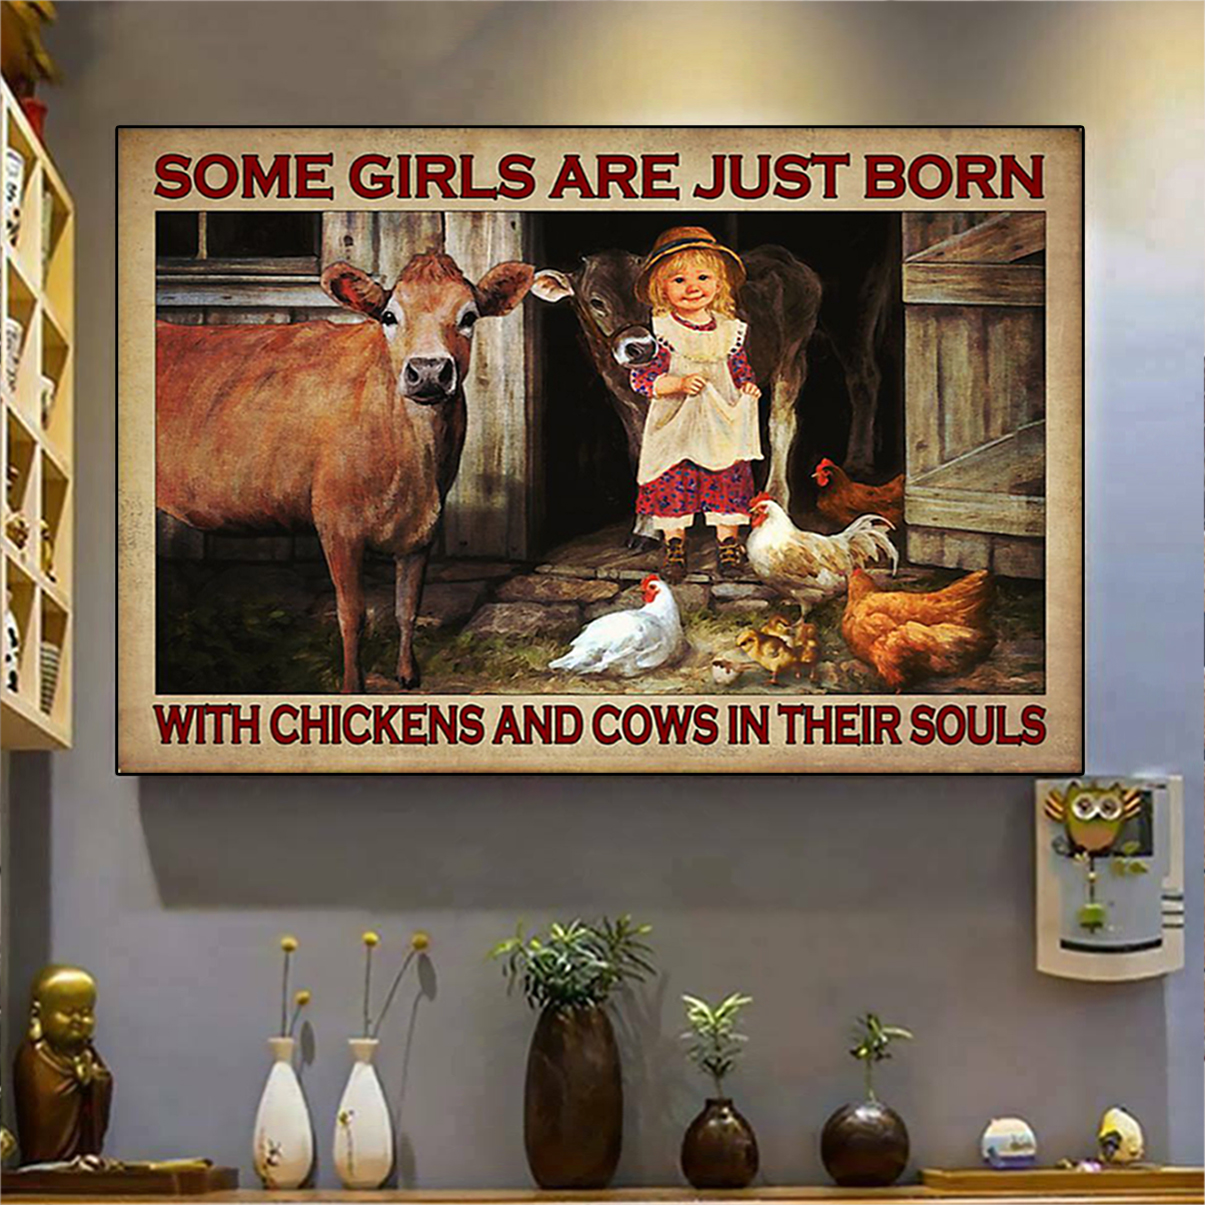 Some girls are just born with chickens and cows in their souls poster A2